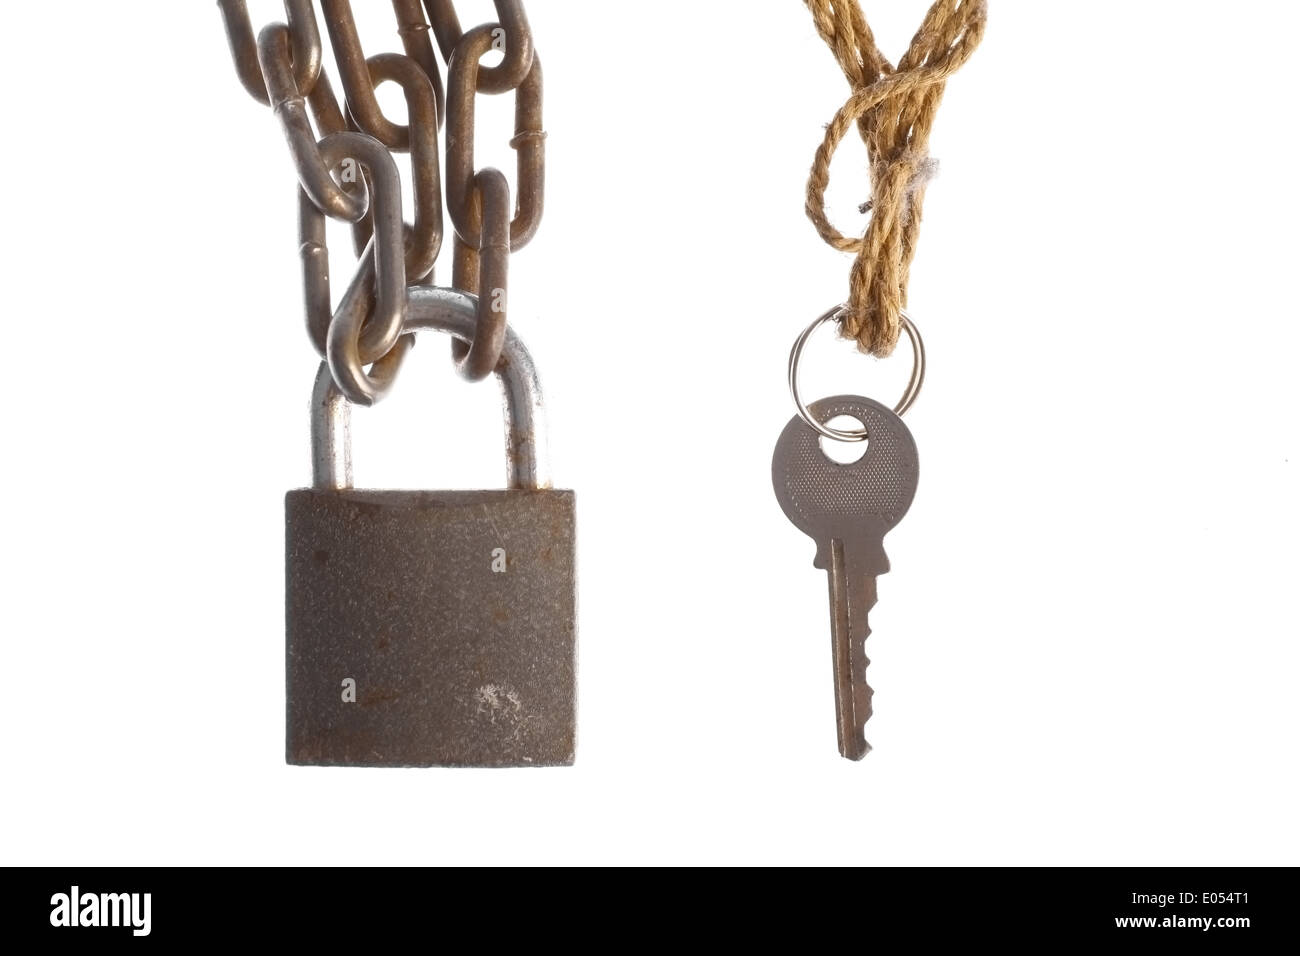 A padlock and a key, isolated on white. Stock Photo